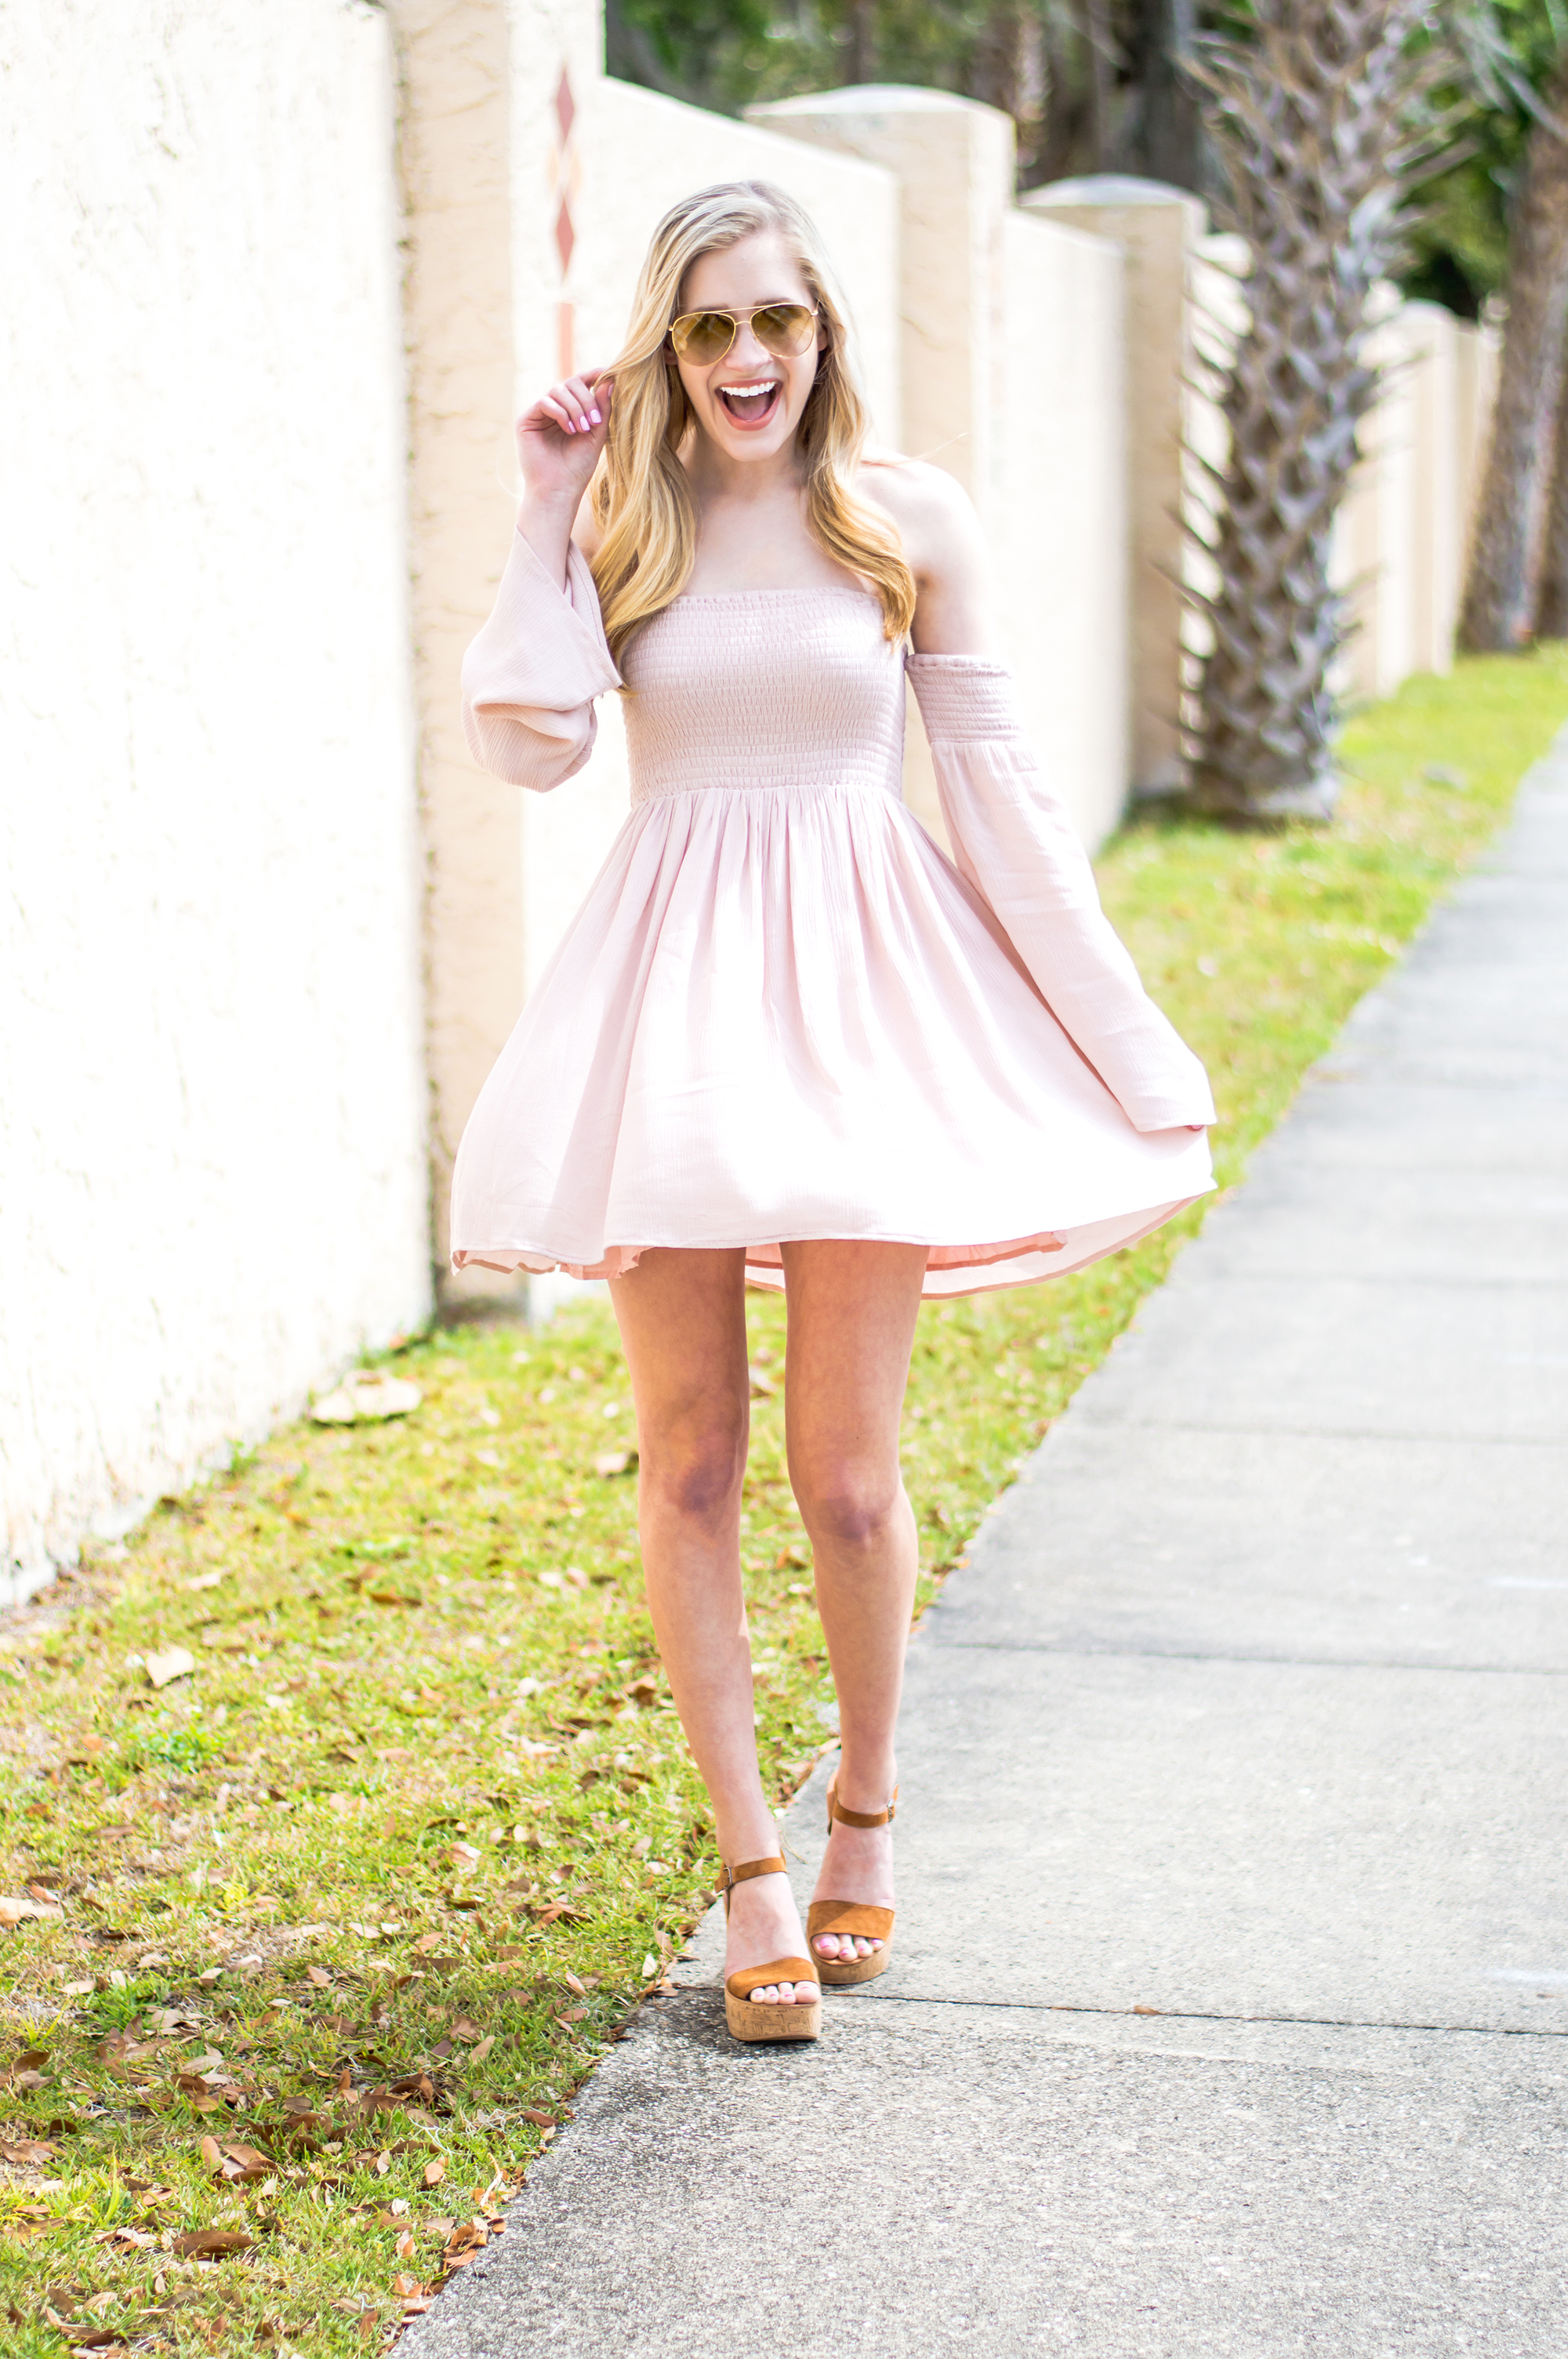 styelled-blog-elle-elisabeth-fashion-style-blogger-florida-tobi-clothing-sundress-blush-dress-burberry-sunglasses-aviator-dolce-vita-01